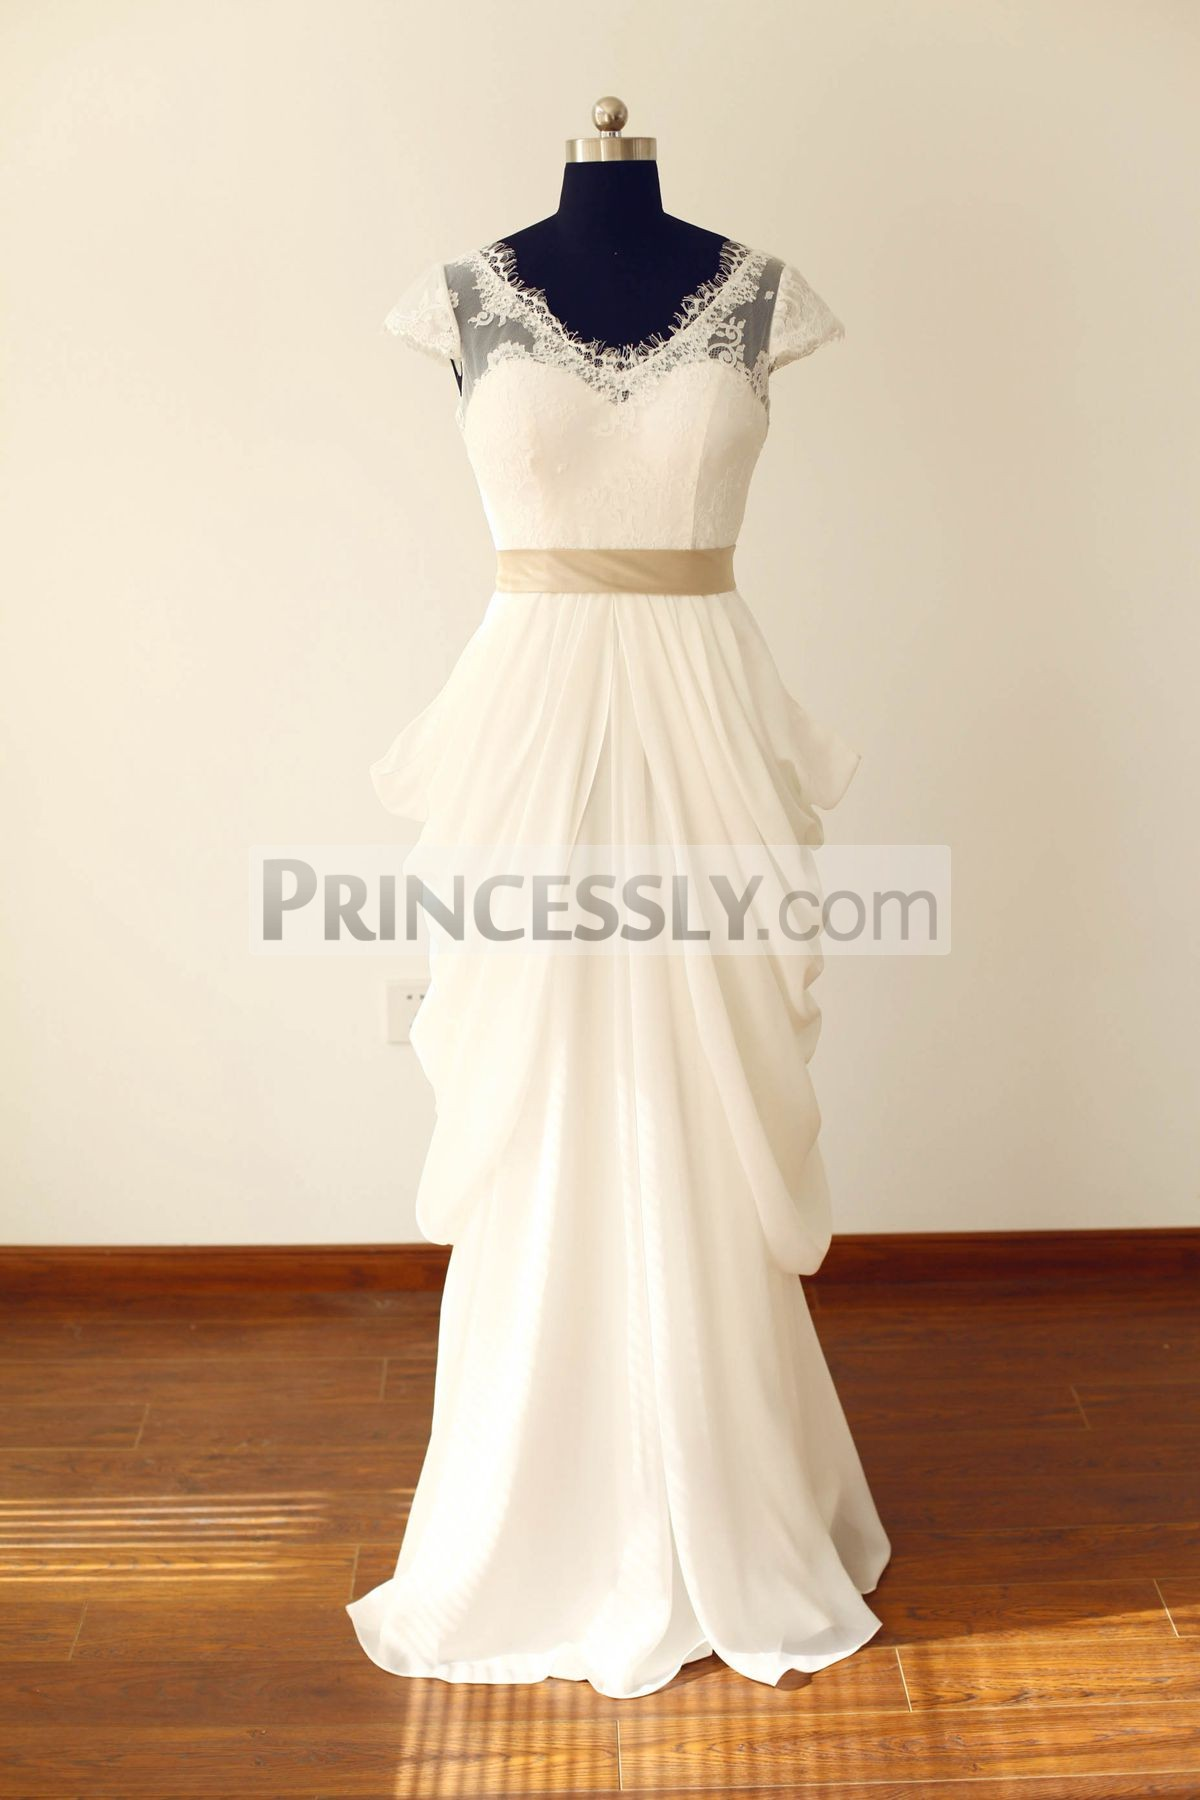 Princessly.com-K1000225-Sheer See Though Ivory Lace Chiffon Cap Sleeves V Back Wedding Dress with champagne sash-31